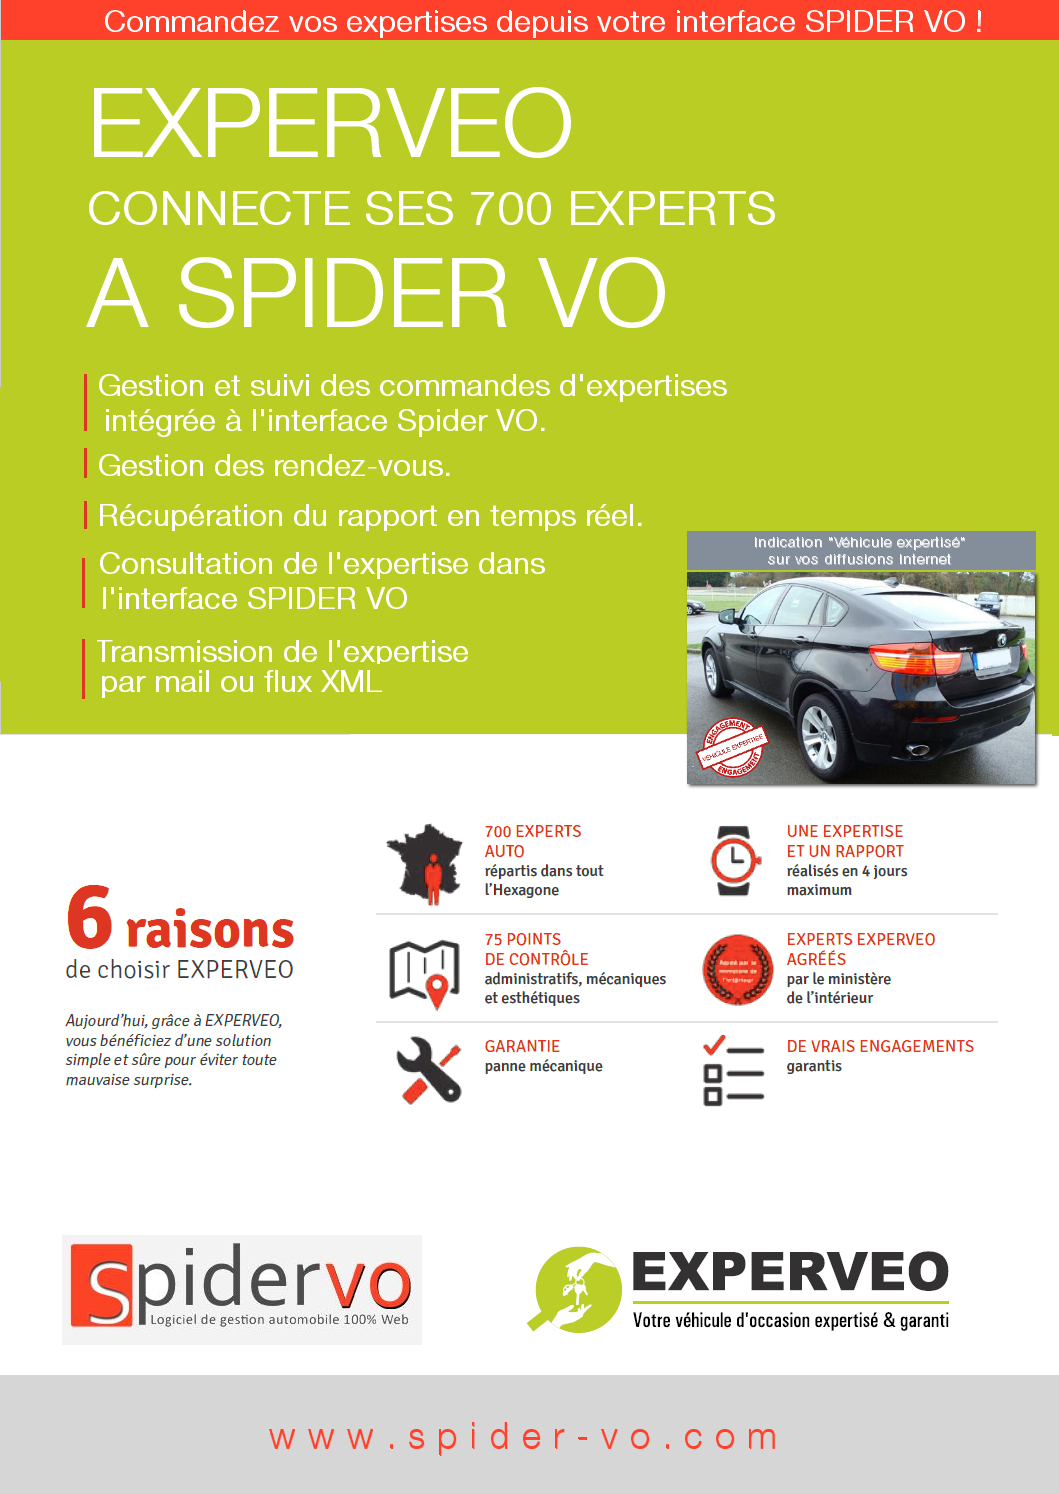 EXPERVEO connecte ses 700 experts à SPIDER VO ! 4